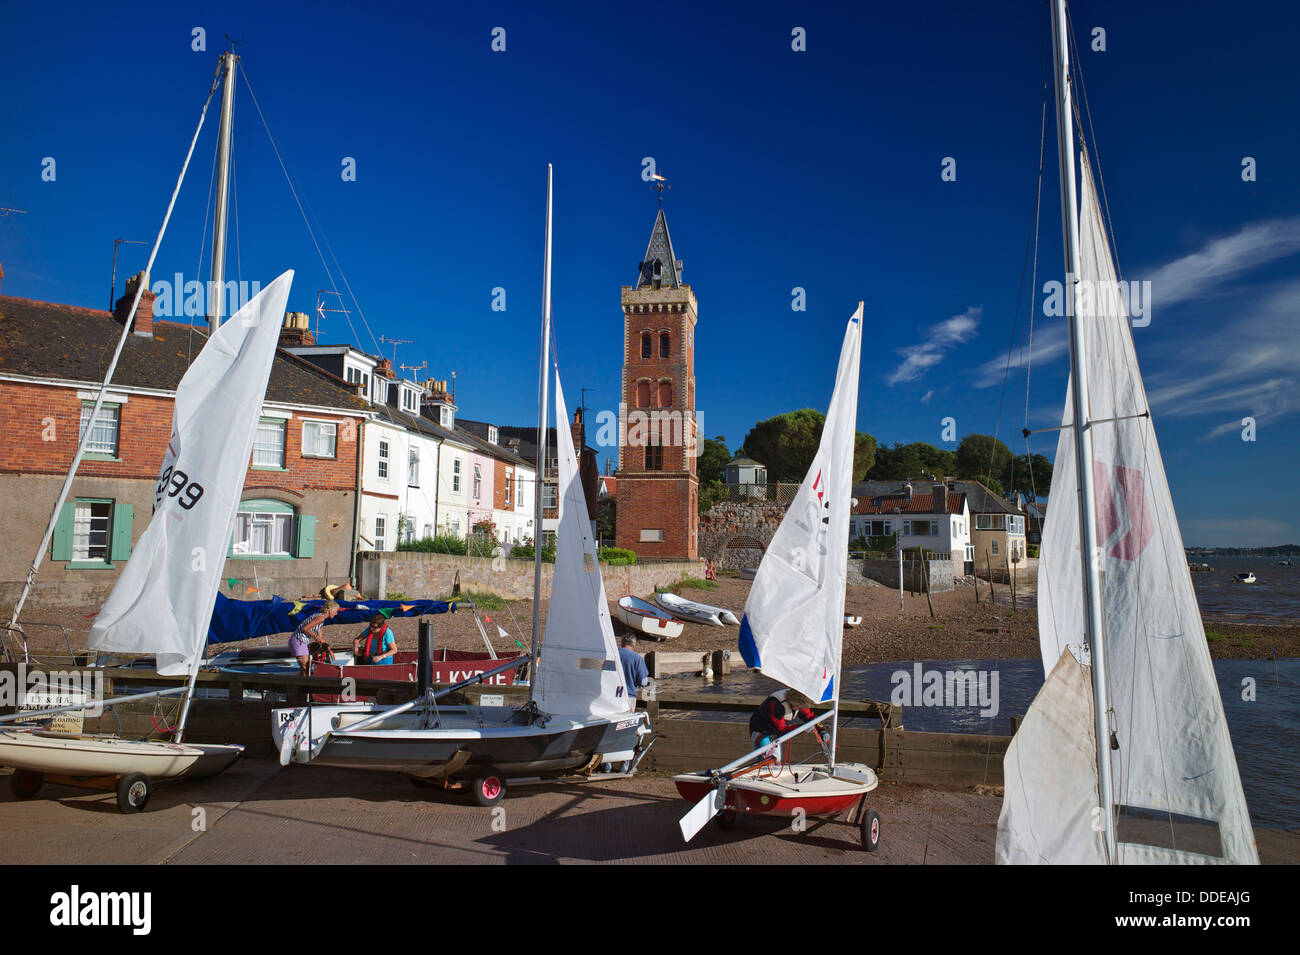 Sailing boats and Peters Tower, Lympstone Harbour, Exe Estuary, Devon, UK - Stock Image